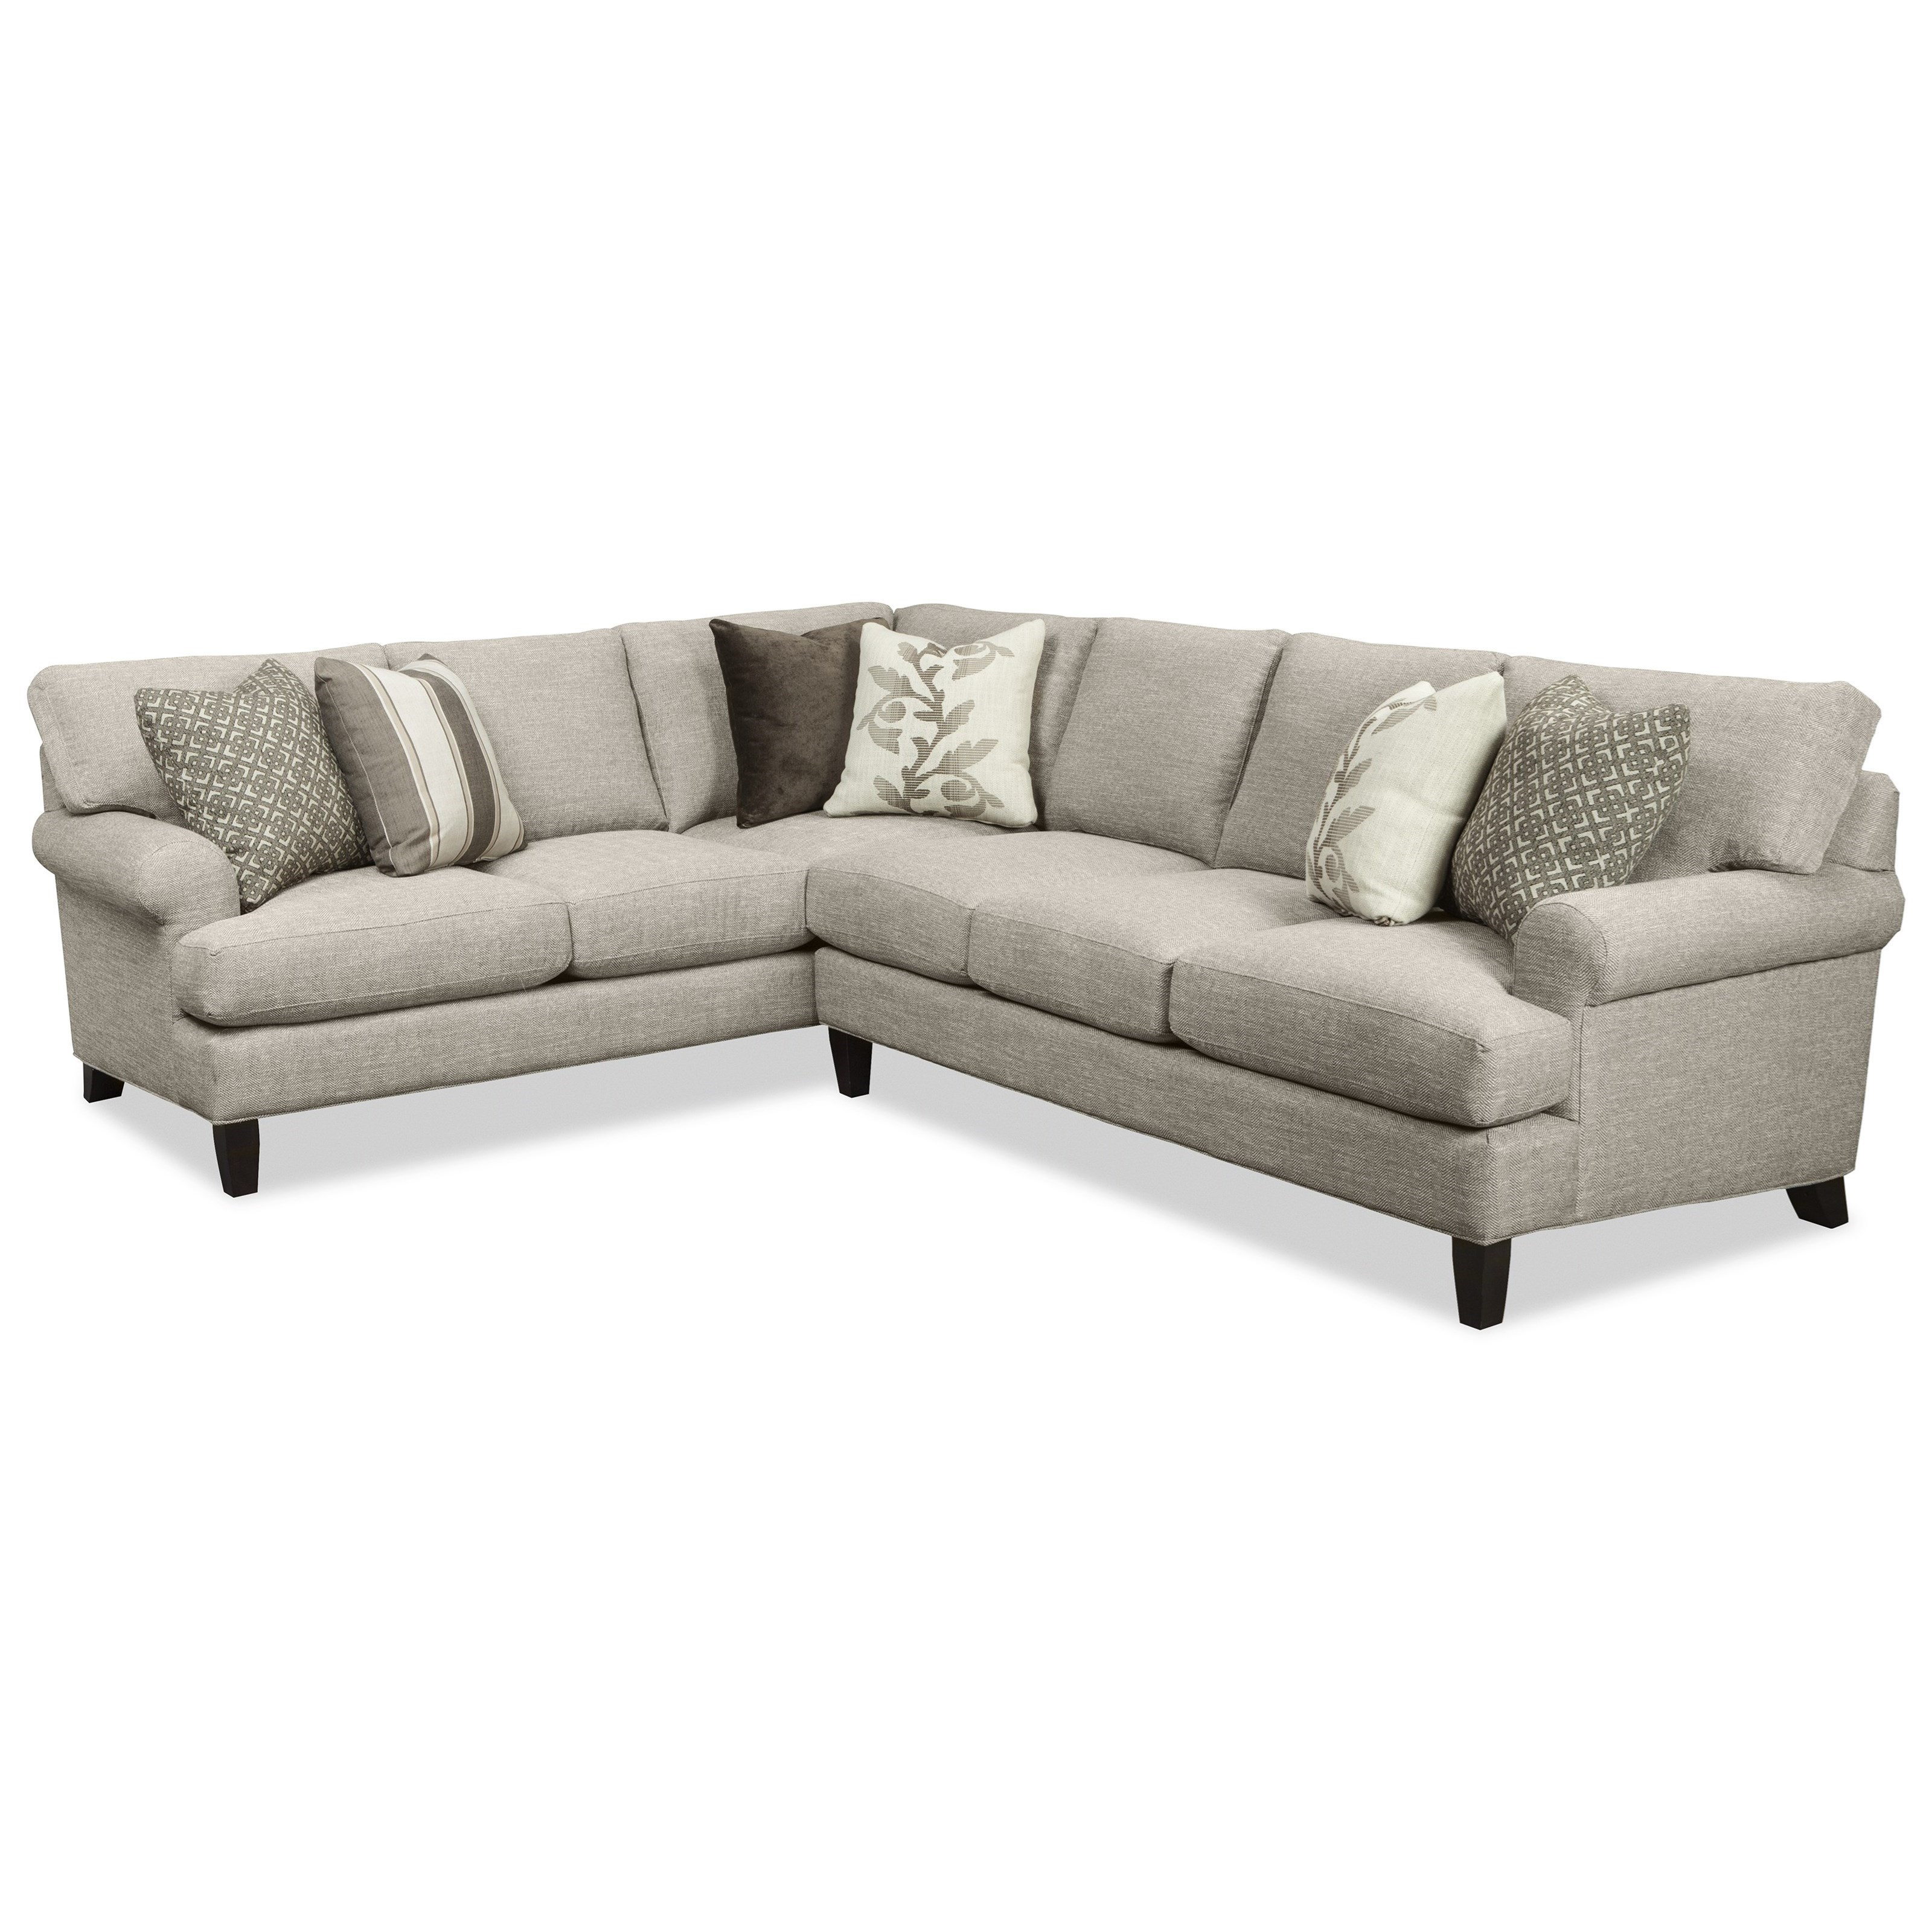 Craftmaster 767350 767450 767550 767650 two piece for 2 piece small sectional sofas